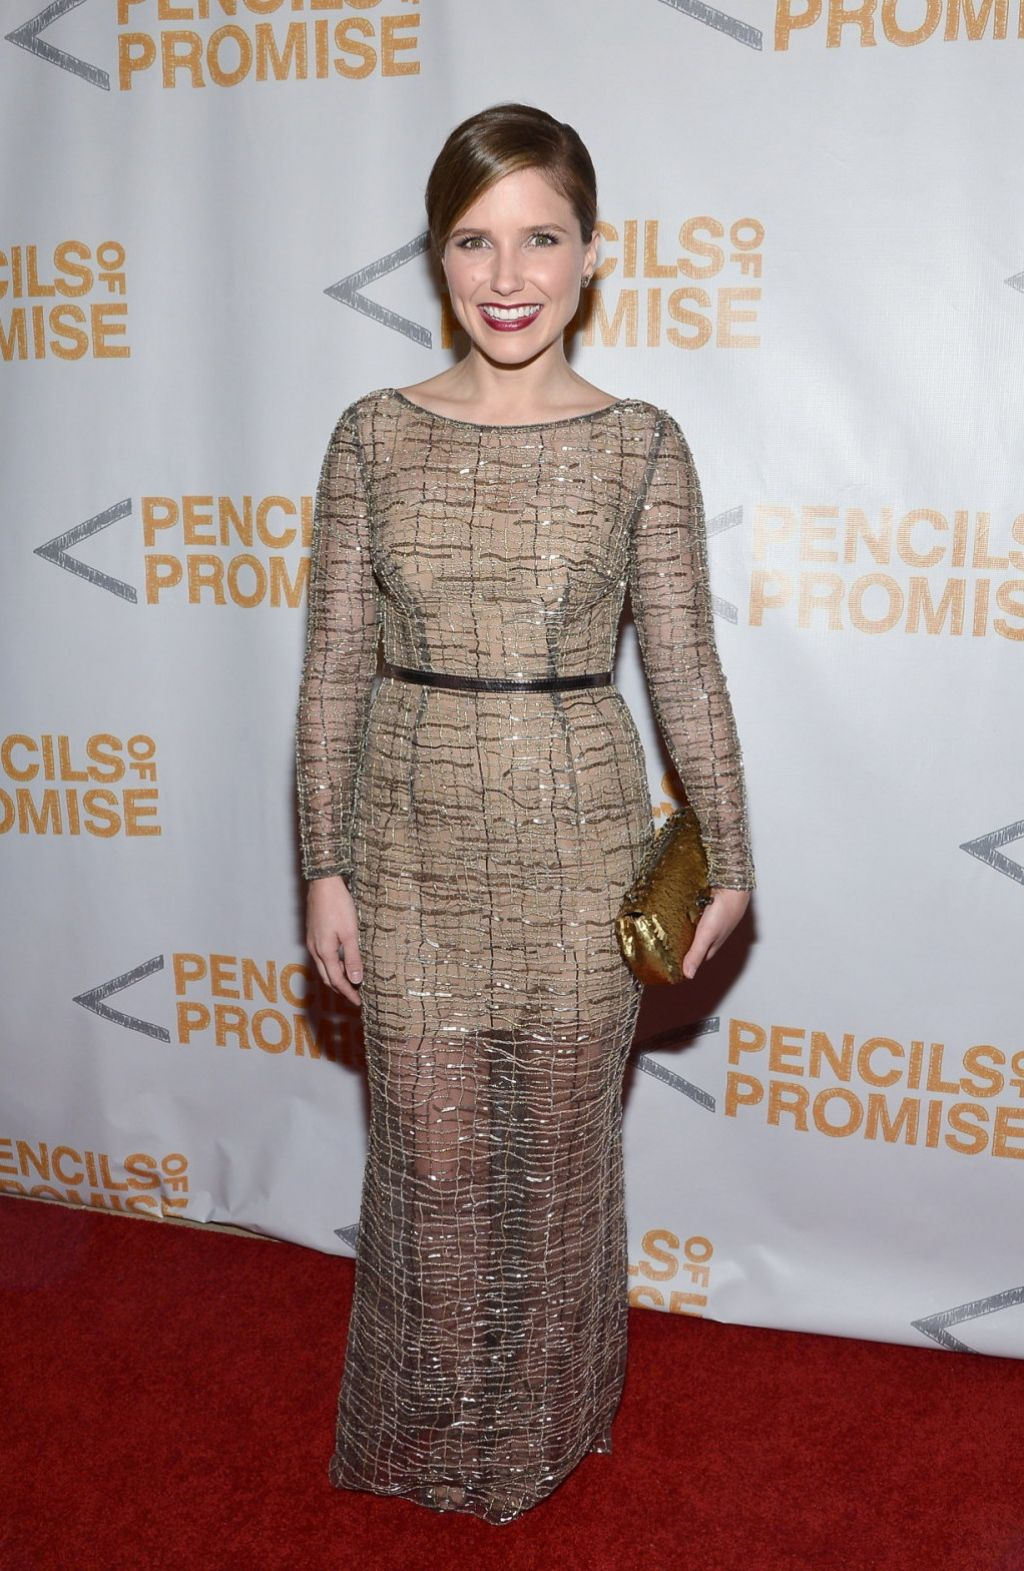 Sophia Bush - Third Annual Pencils of Promise Gala in New York City